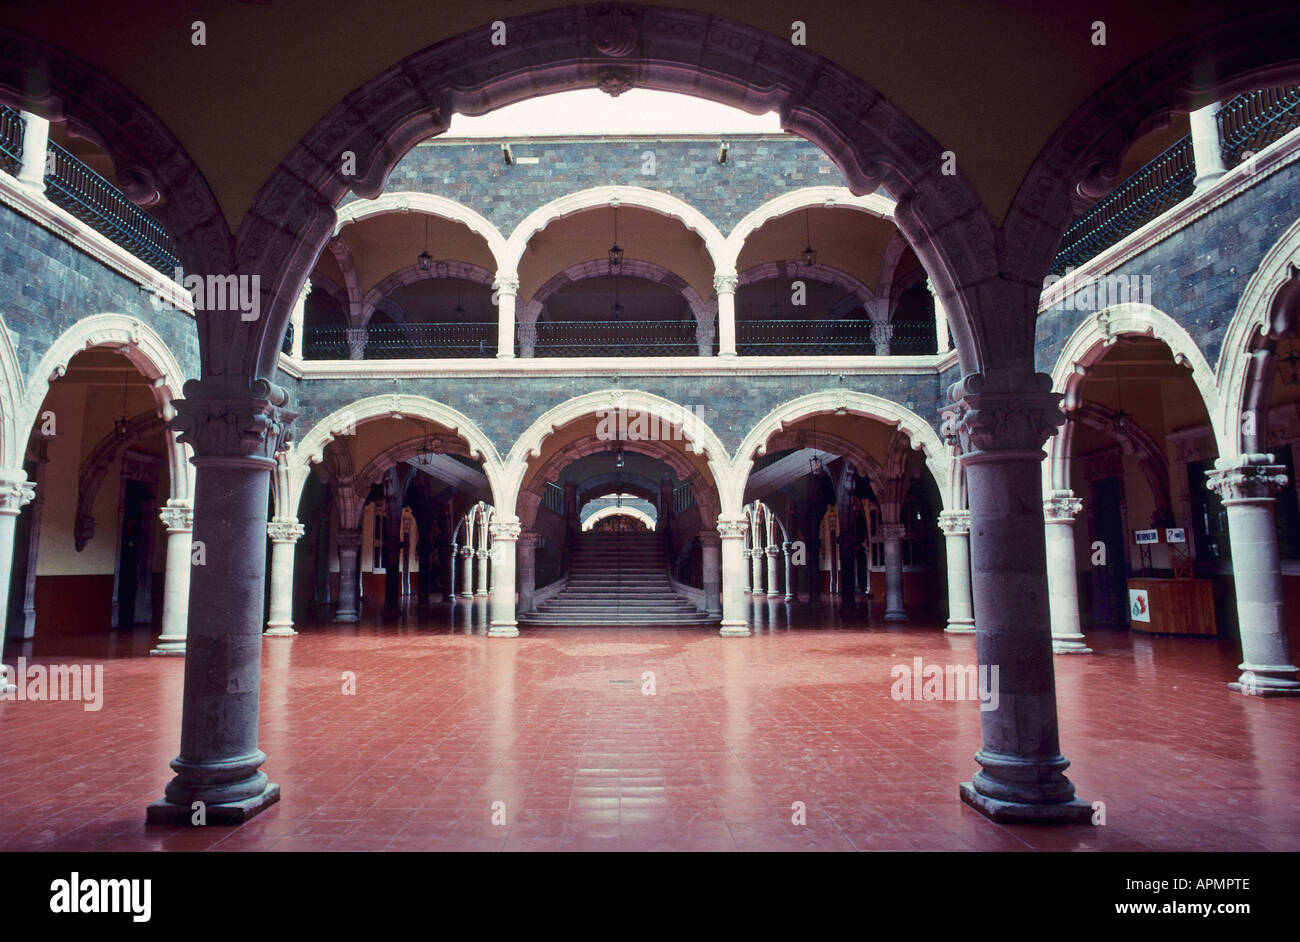 The courtyard with its two tiers of pillared archways of the Palacio del Gobierno which was the residence of the wealthy Rincon Gallardo family in Aguascalientes - Stock Image